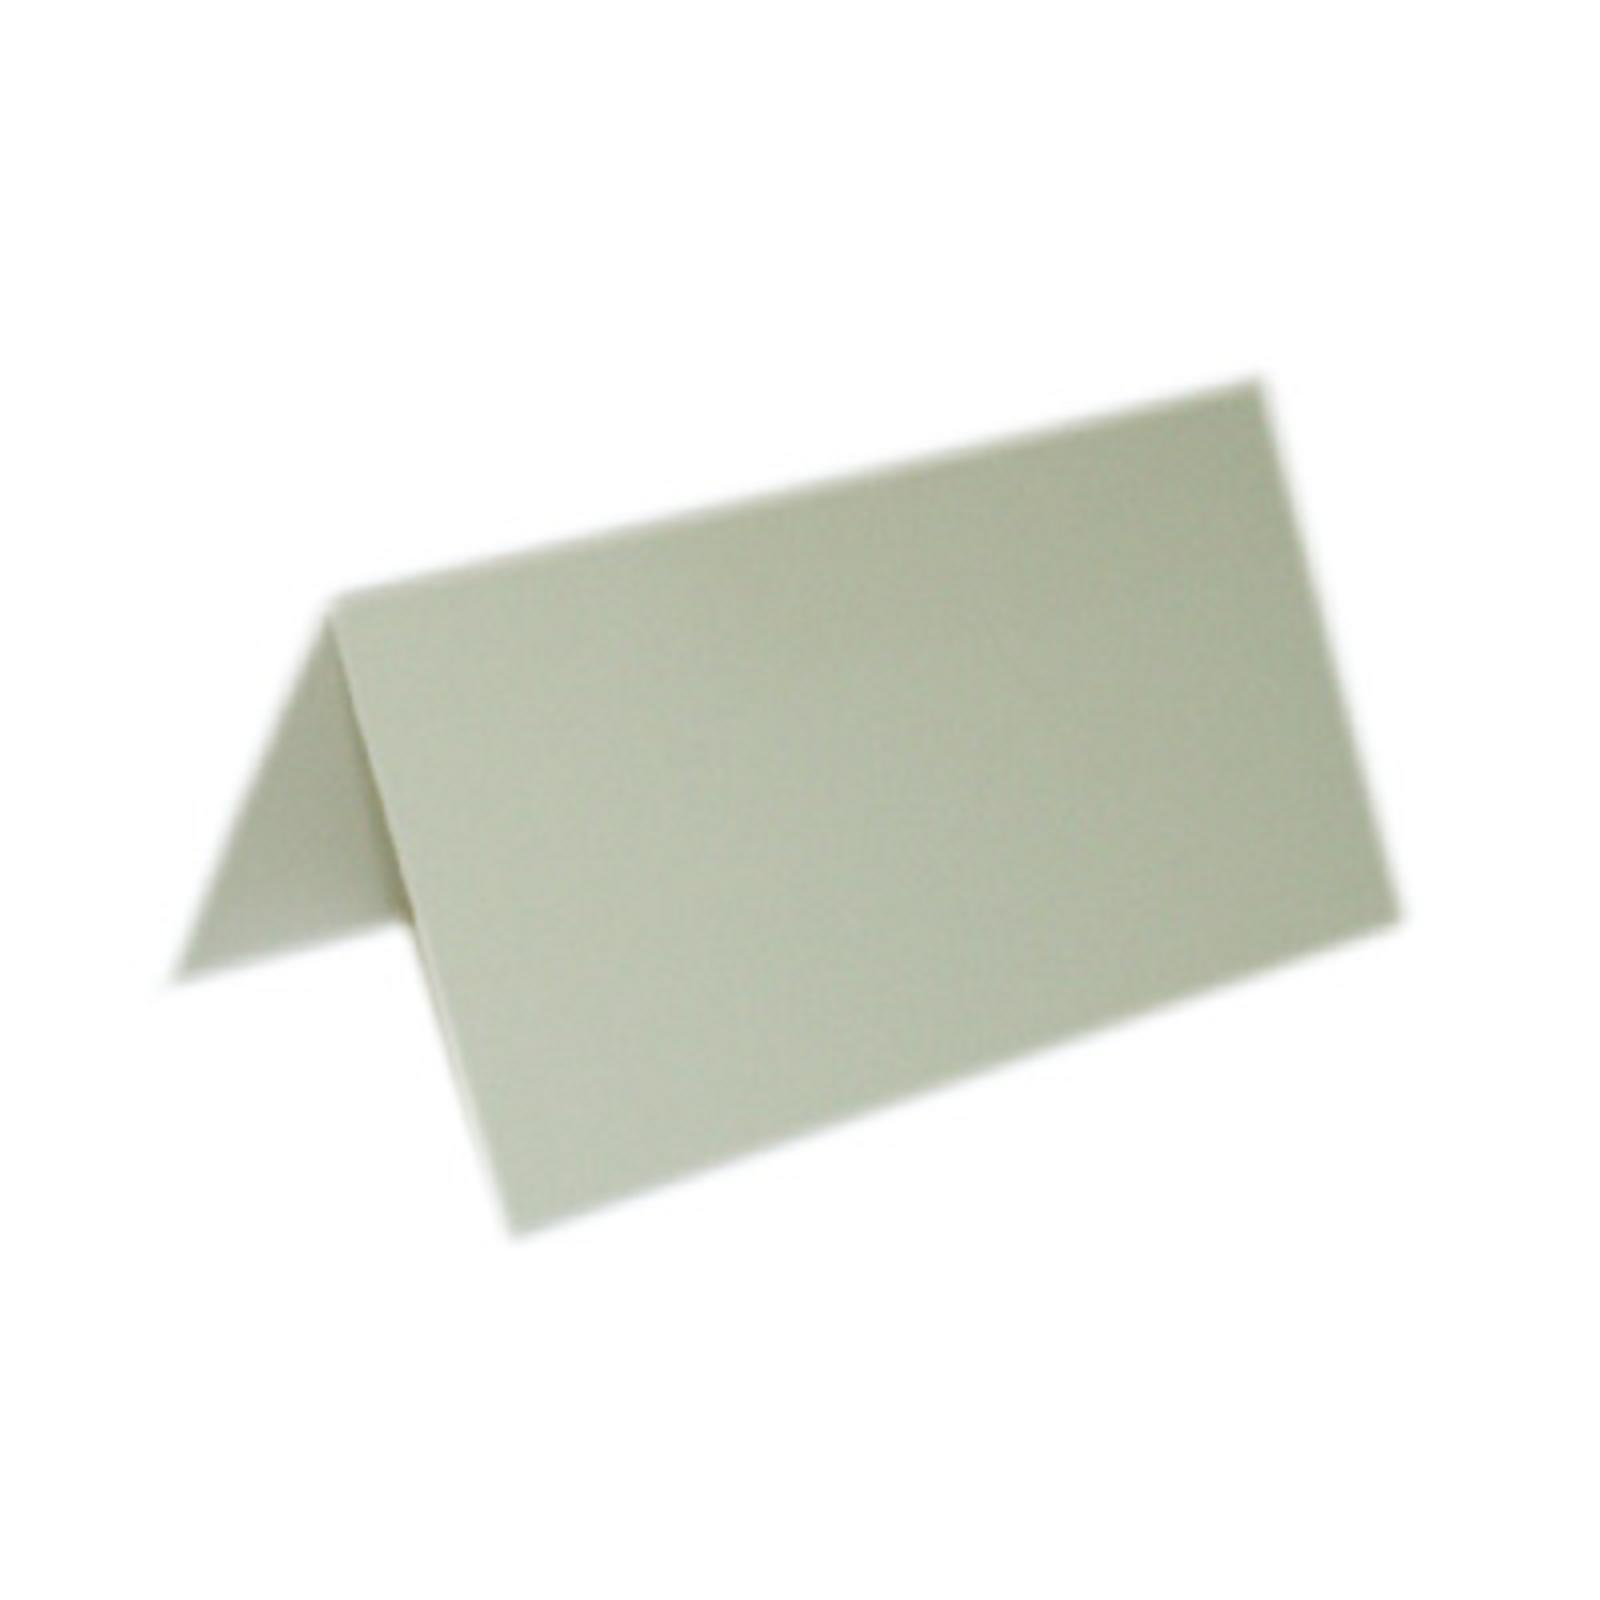 "50 Plain Ivory Place Cards Scored for easy bending 4.25"" x 1.75"" folded"